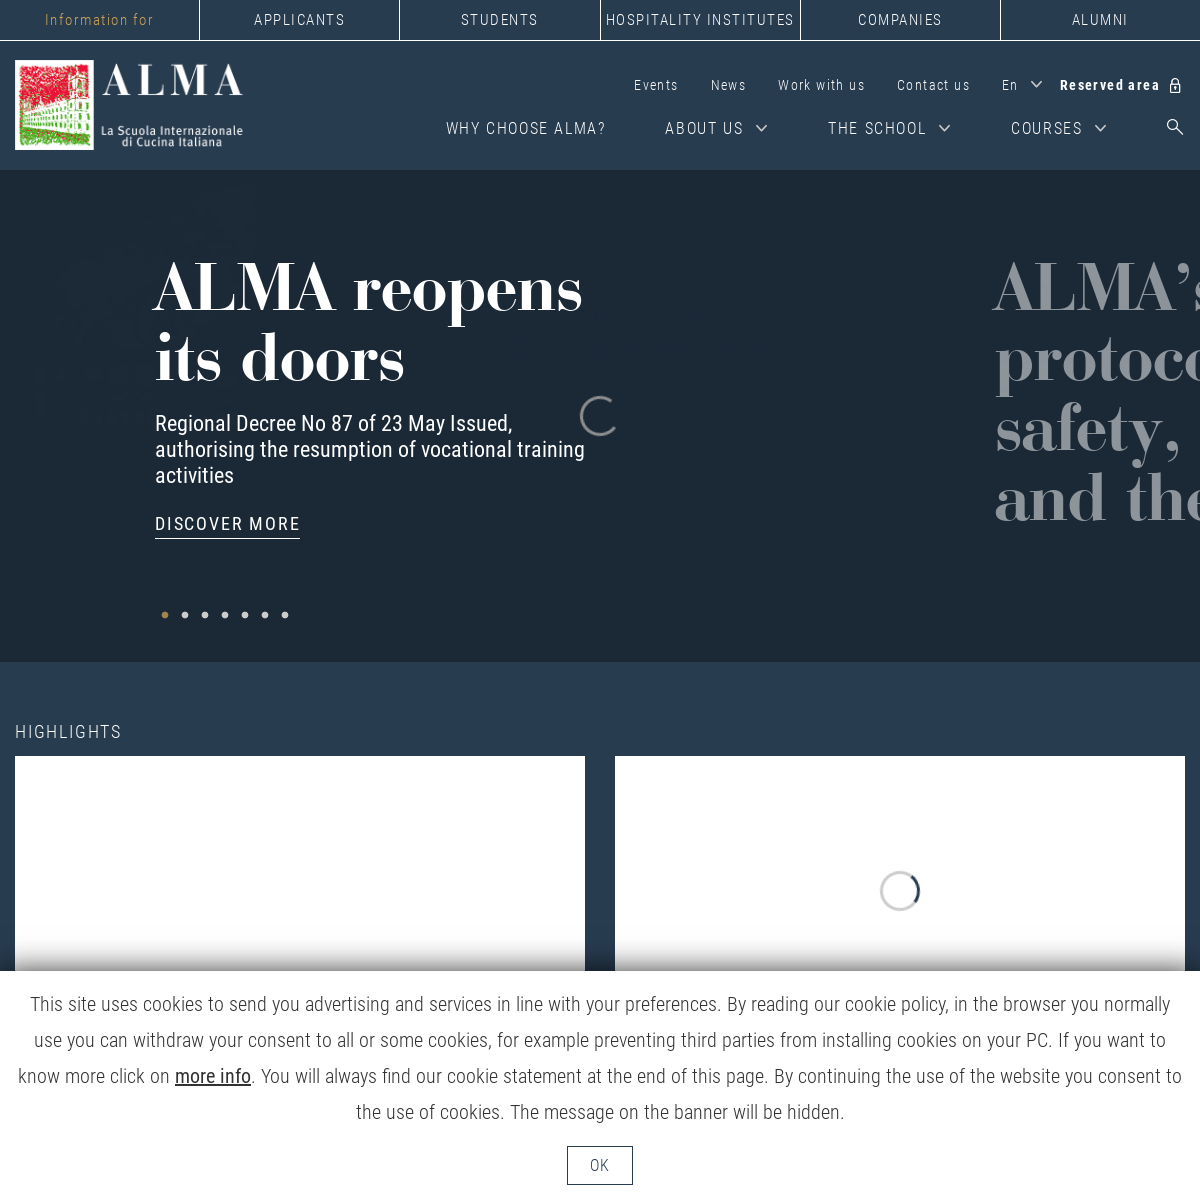 ALMA the International School of Italian Cuisine to become a professional